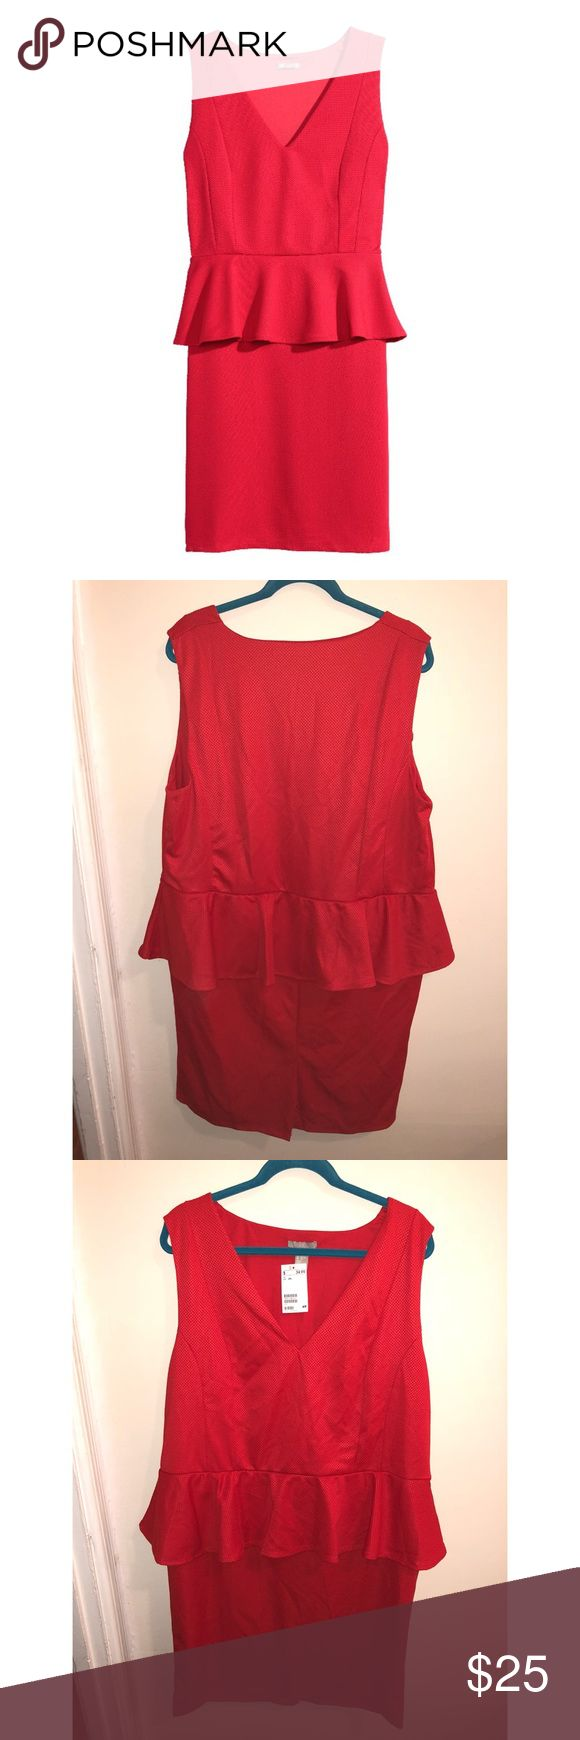 NWT H&M Plus Size Red Peplum Dress, 2X Never worn. Perfect condition (just needs ironed/steamed!) Nice thicker material with stretch. ~41 inches shoulder to hem. Great for a nice night out. H&M Dresses